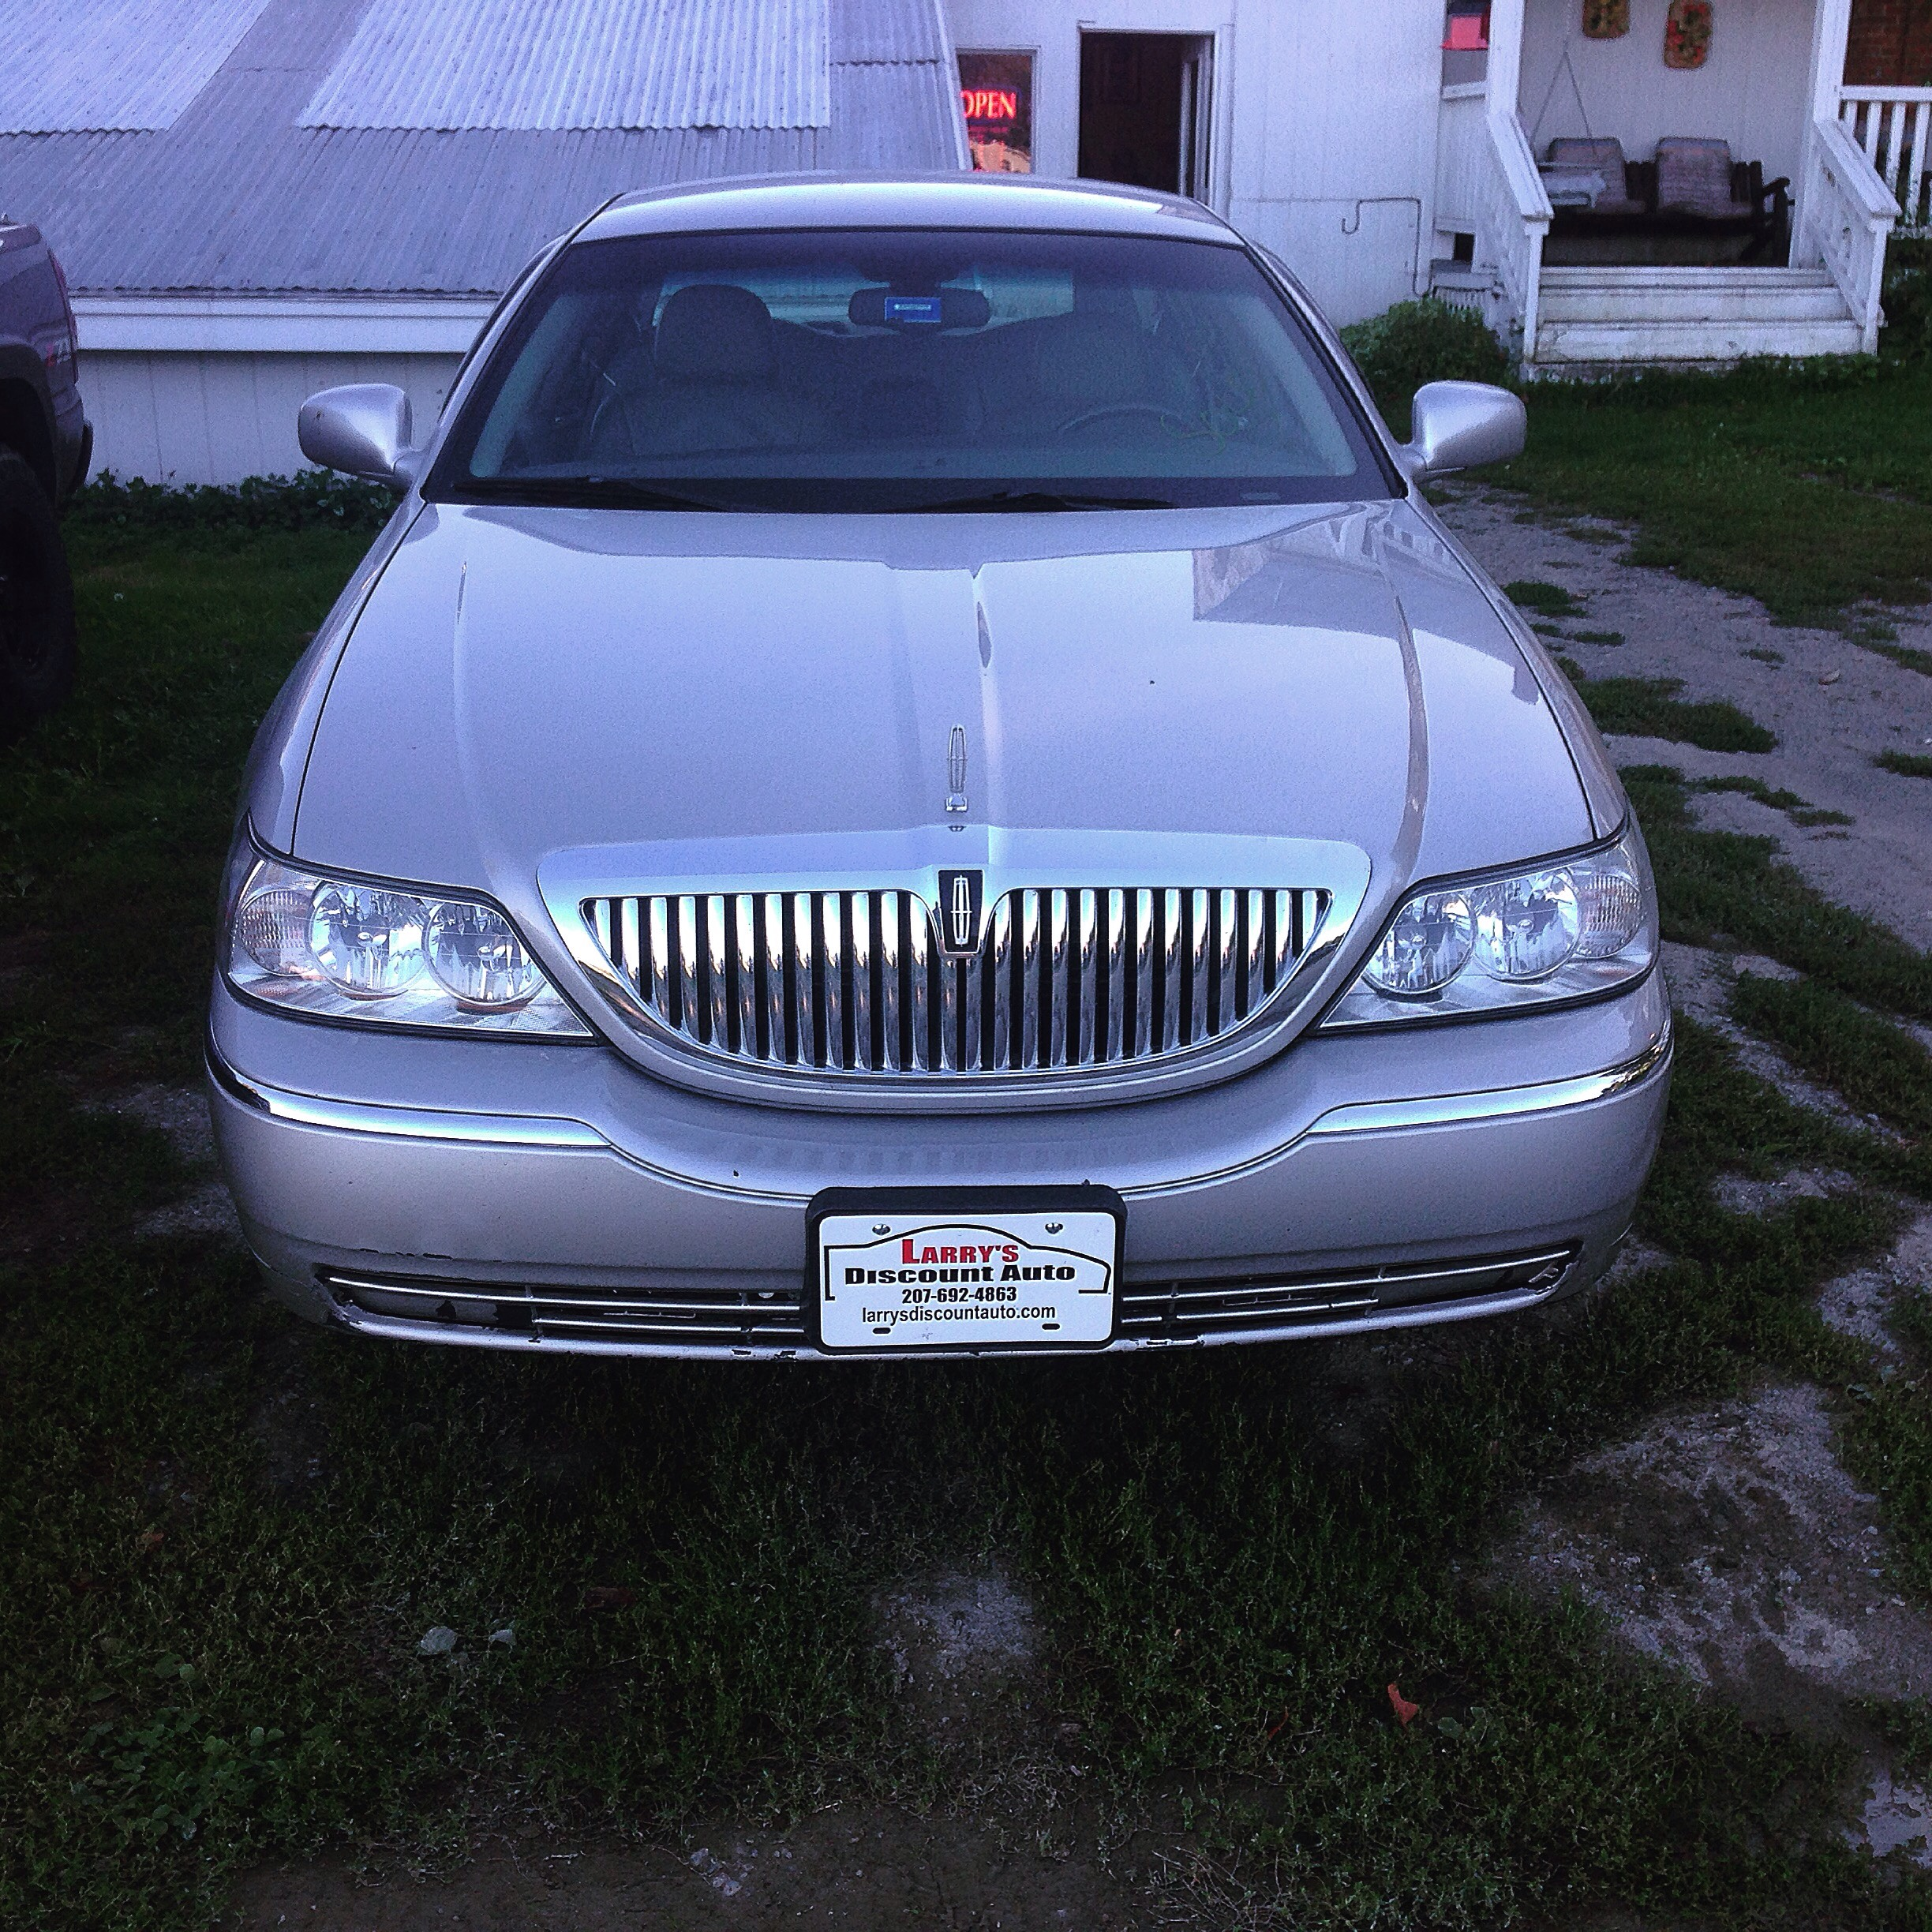 My Old Lincoln Town Car Love This Beast